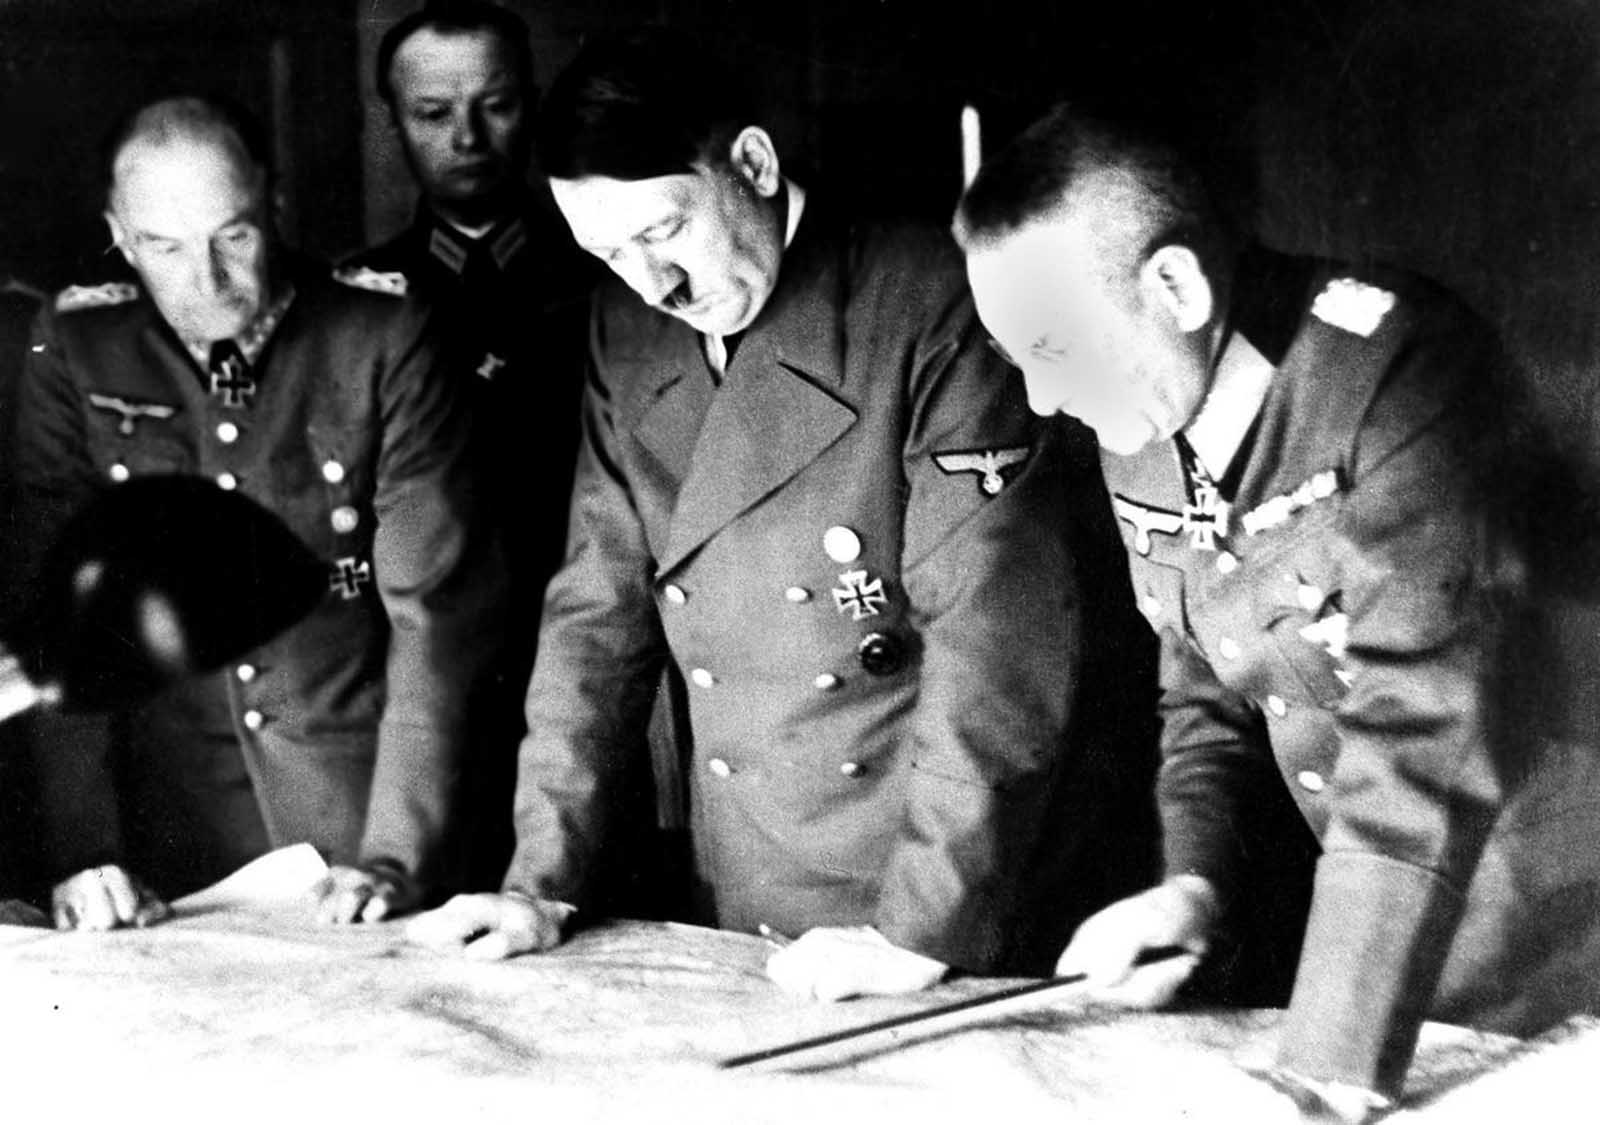 Adolf Hitler, center, studies a Russian war map with General Field Marshal Walter Von Brauchitsch, left, German commander in chief, and Chief of Staff Col. General Franz Halder, on August 7, 1941.